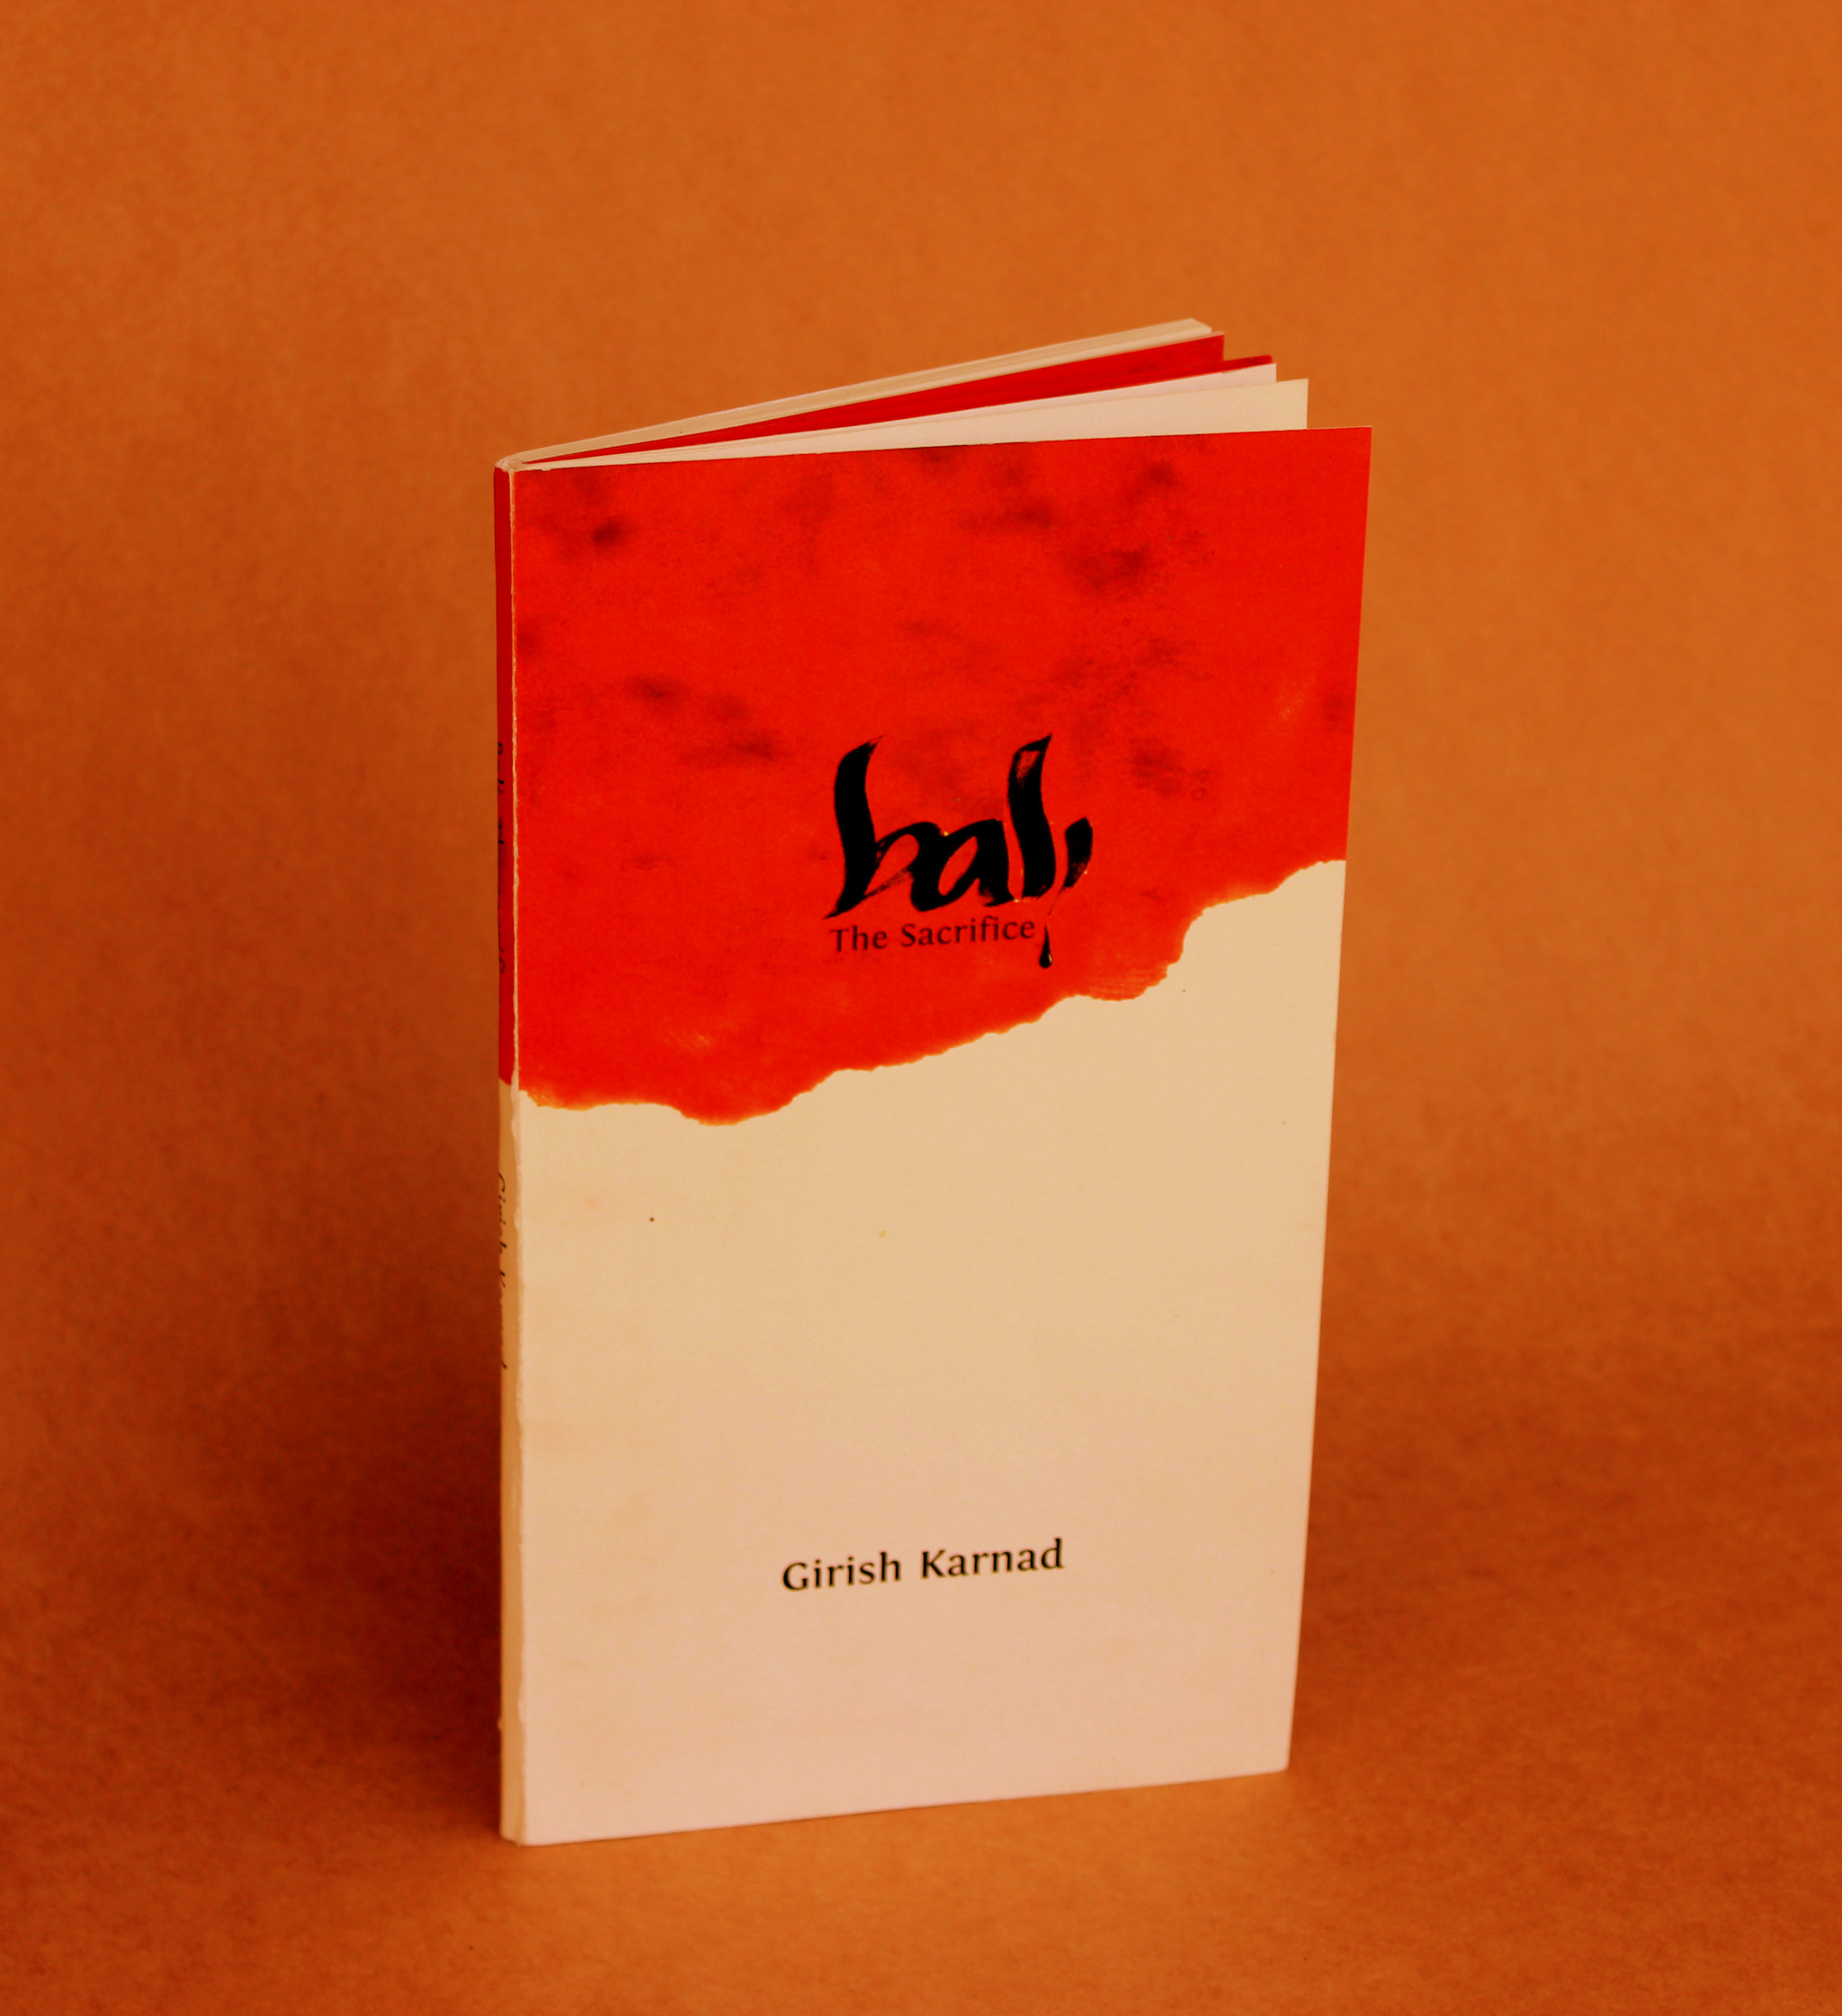 publication design cindrella samuel designing the book included the cover page layout and all other illustrations the play talks about love and lust hence the use of red color to keep the